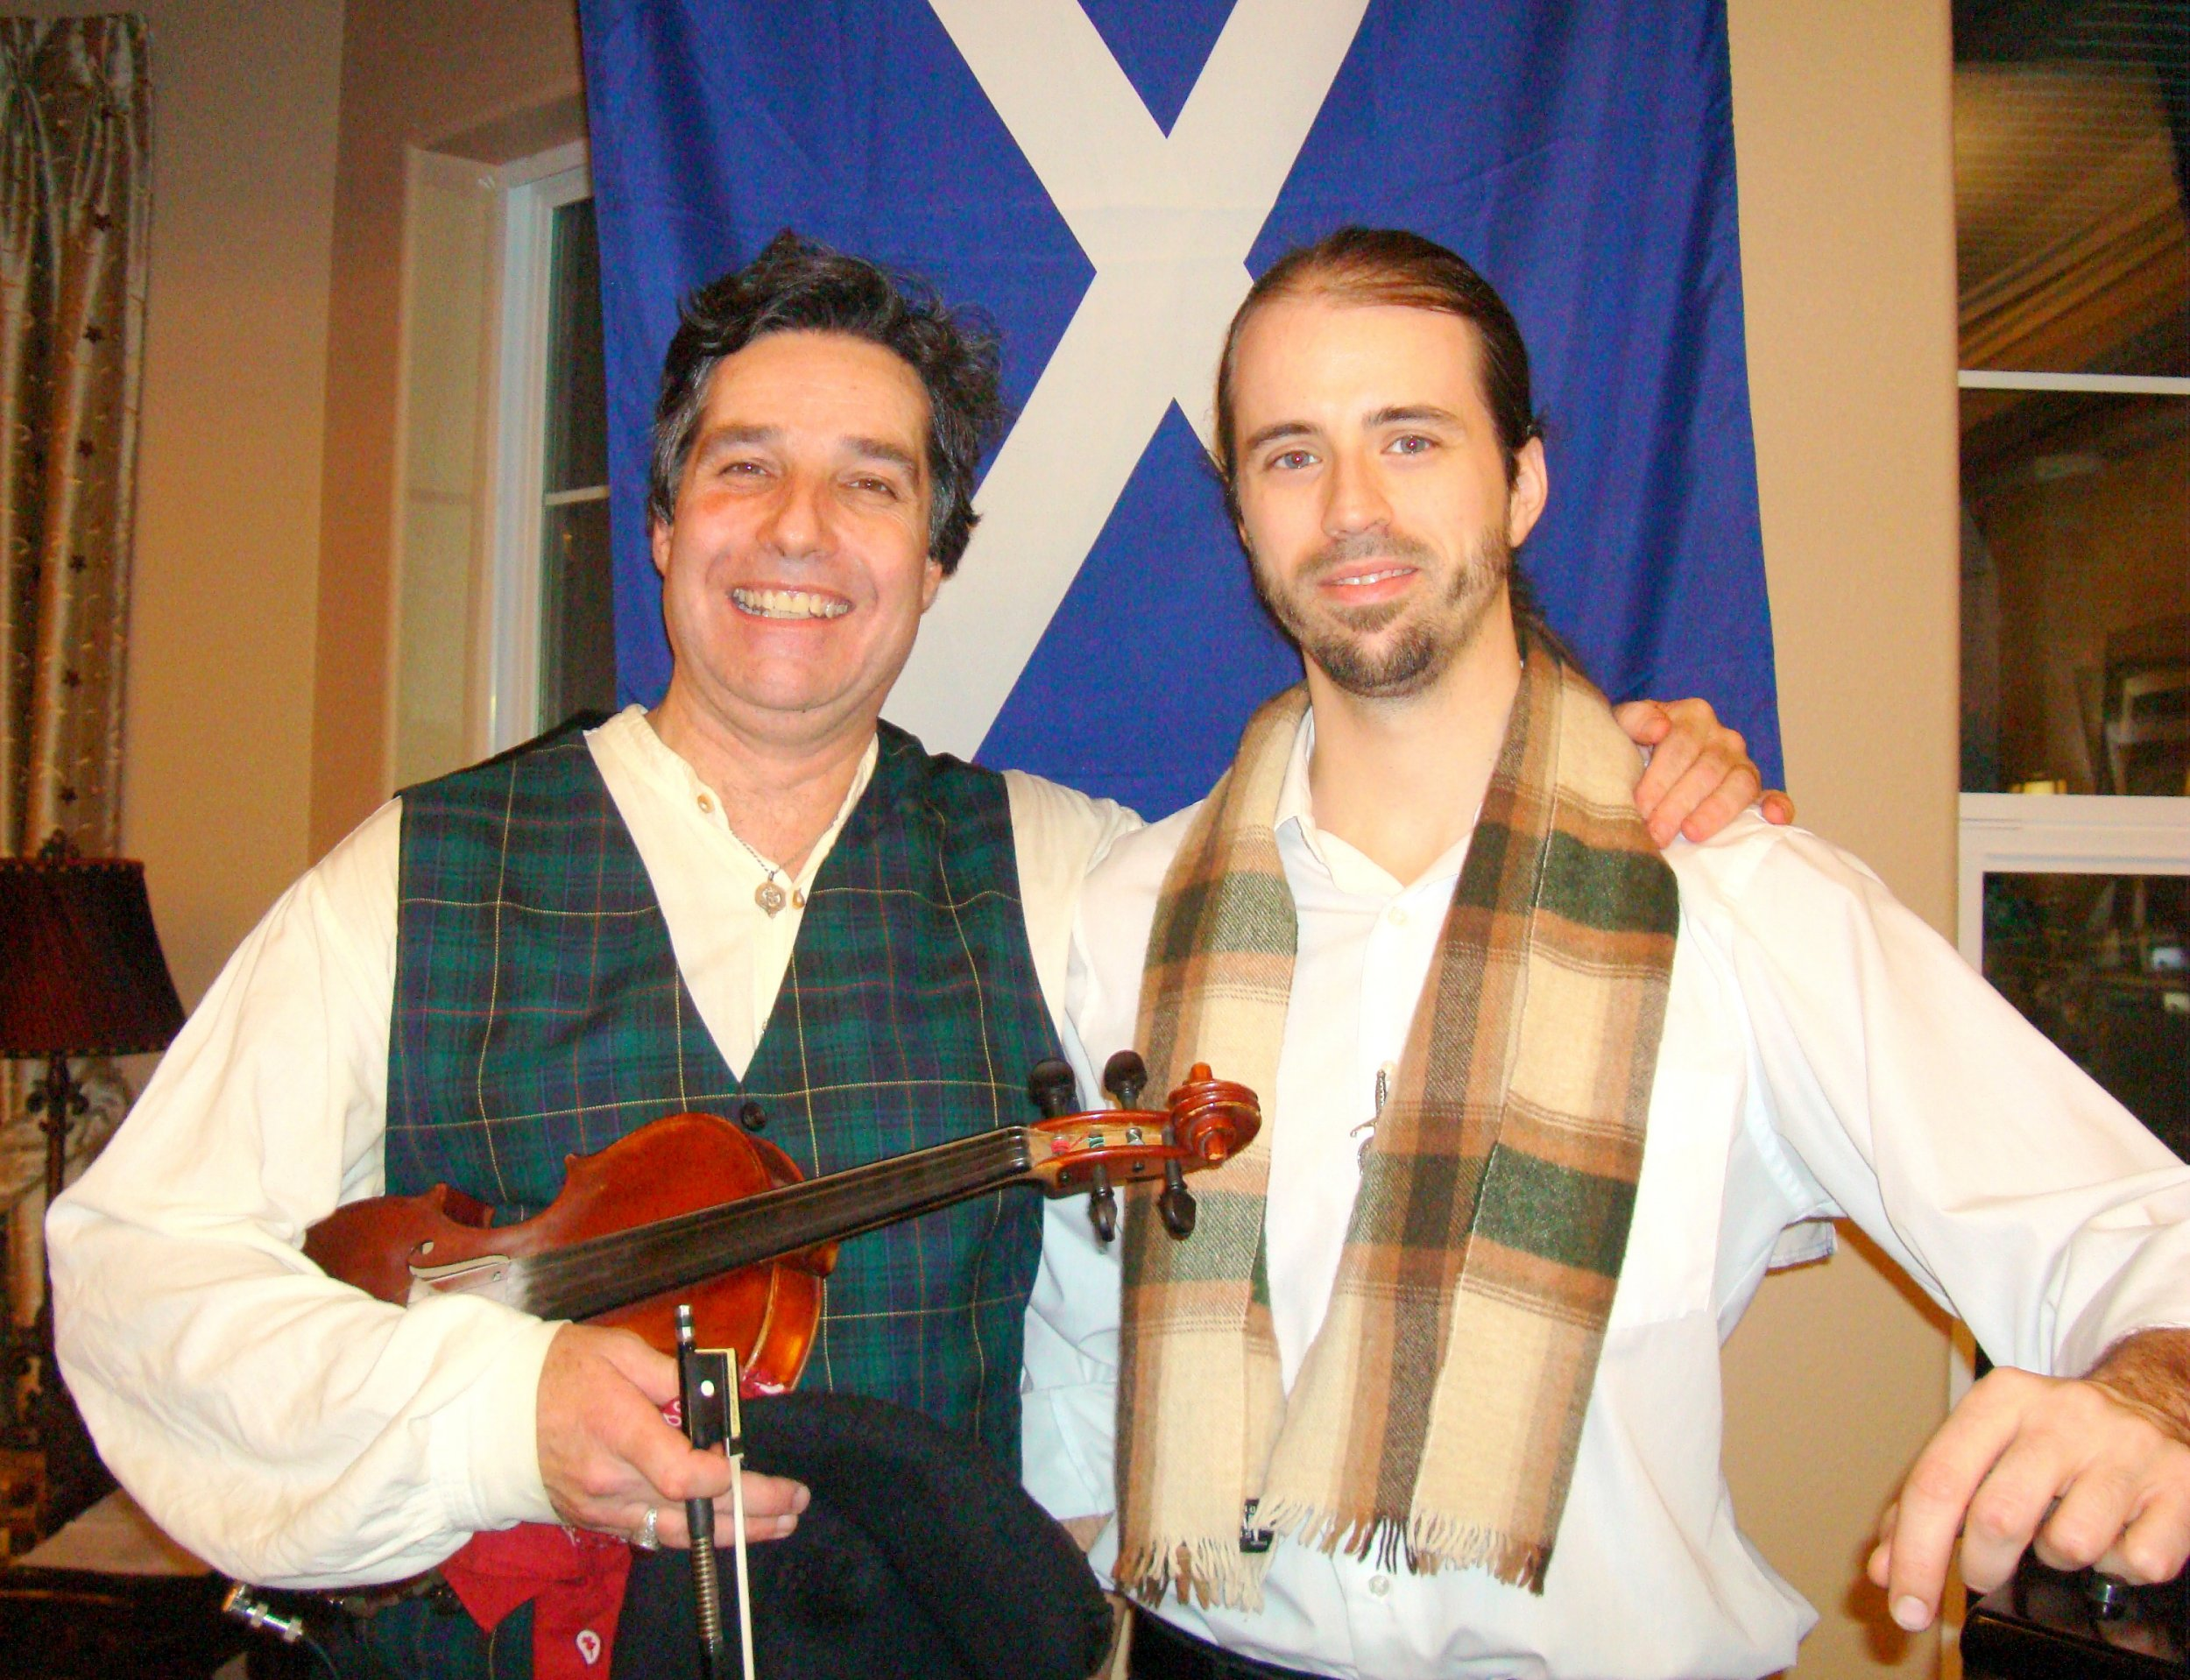 Tom Hamilton (Violinist and Singer) and Derek Giberson (Pianist) fantastic entertainers